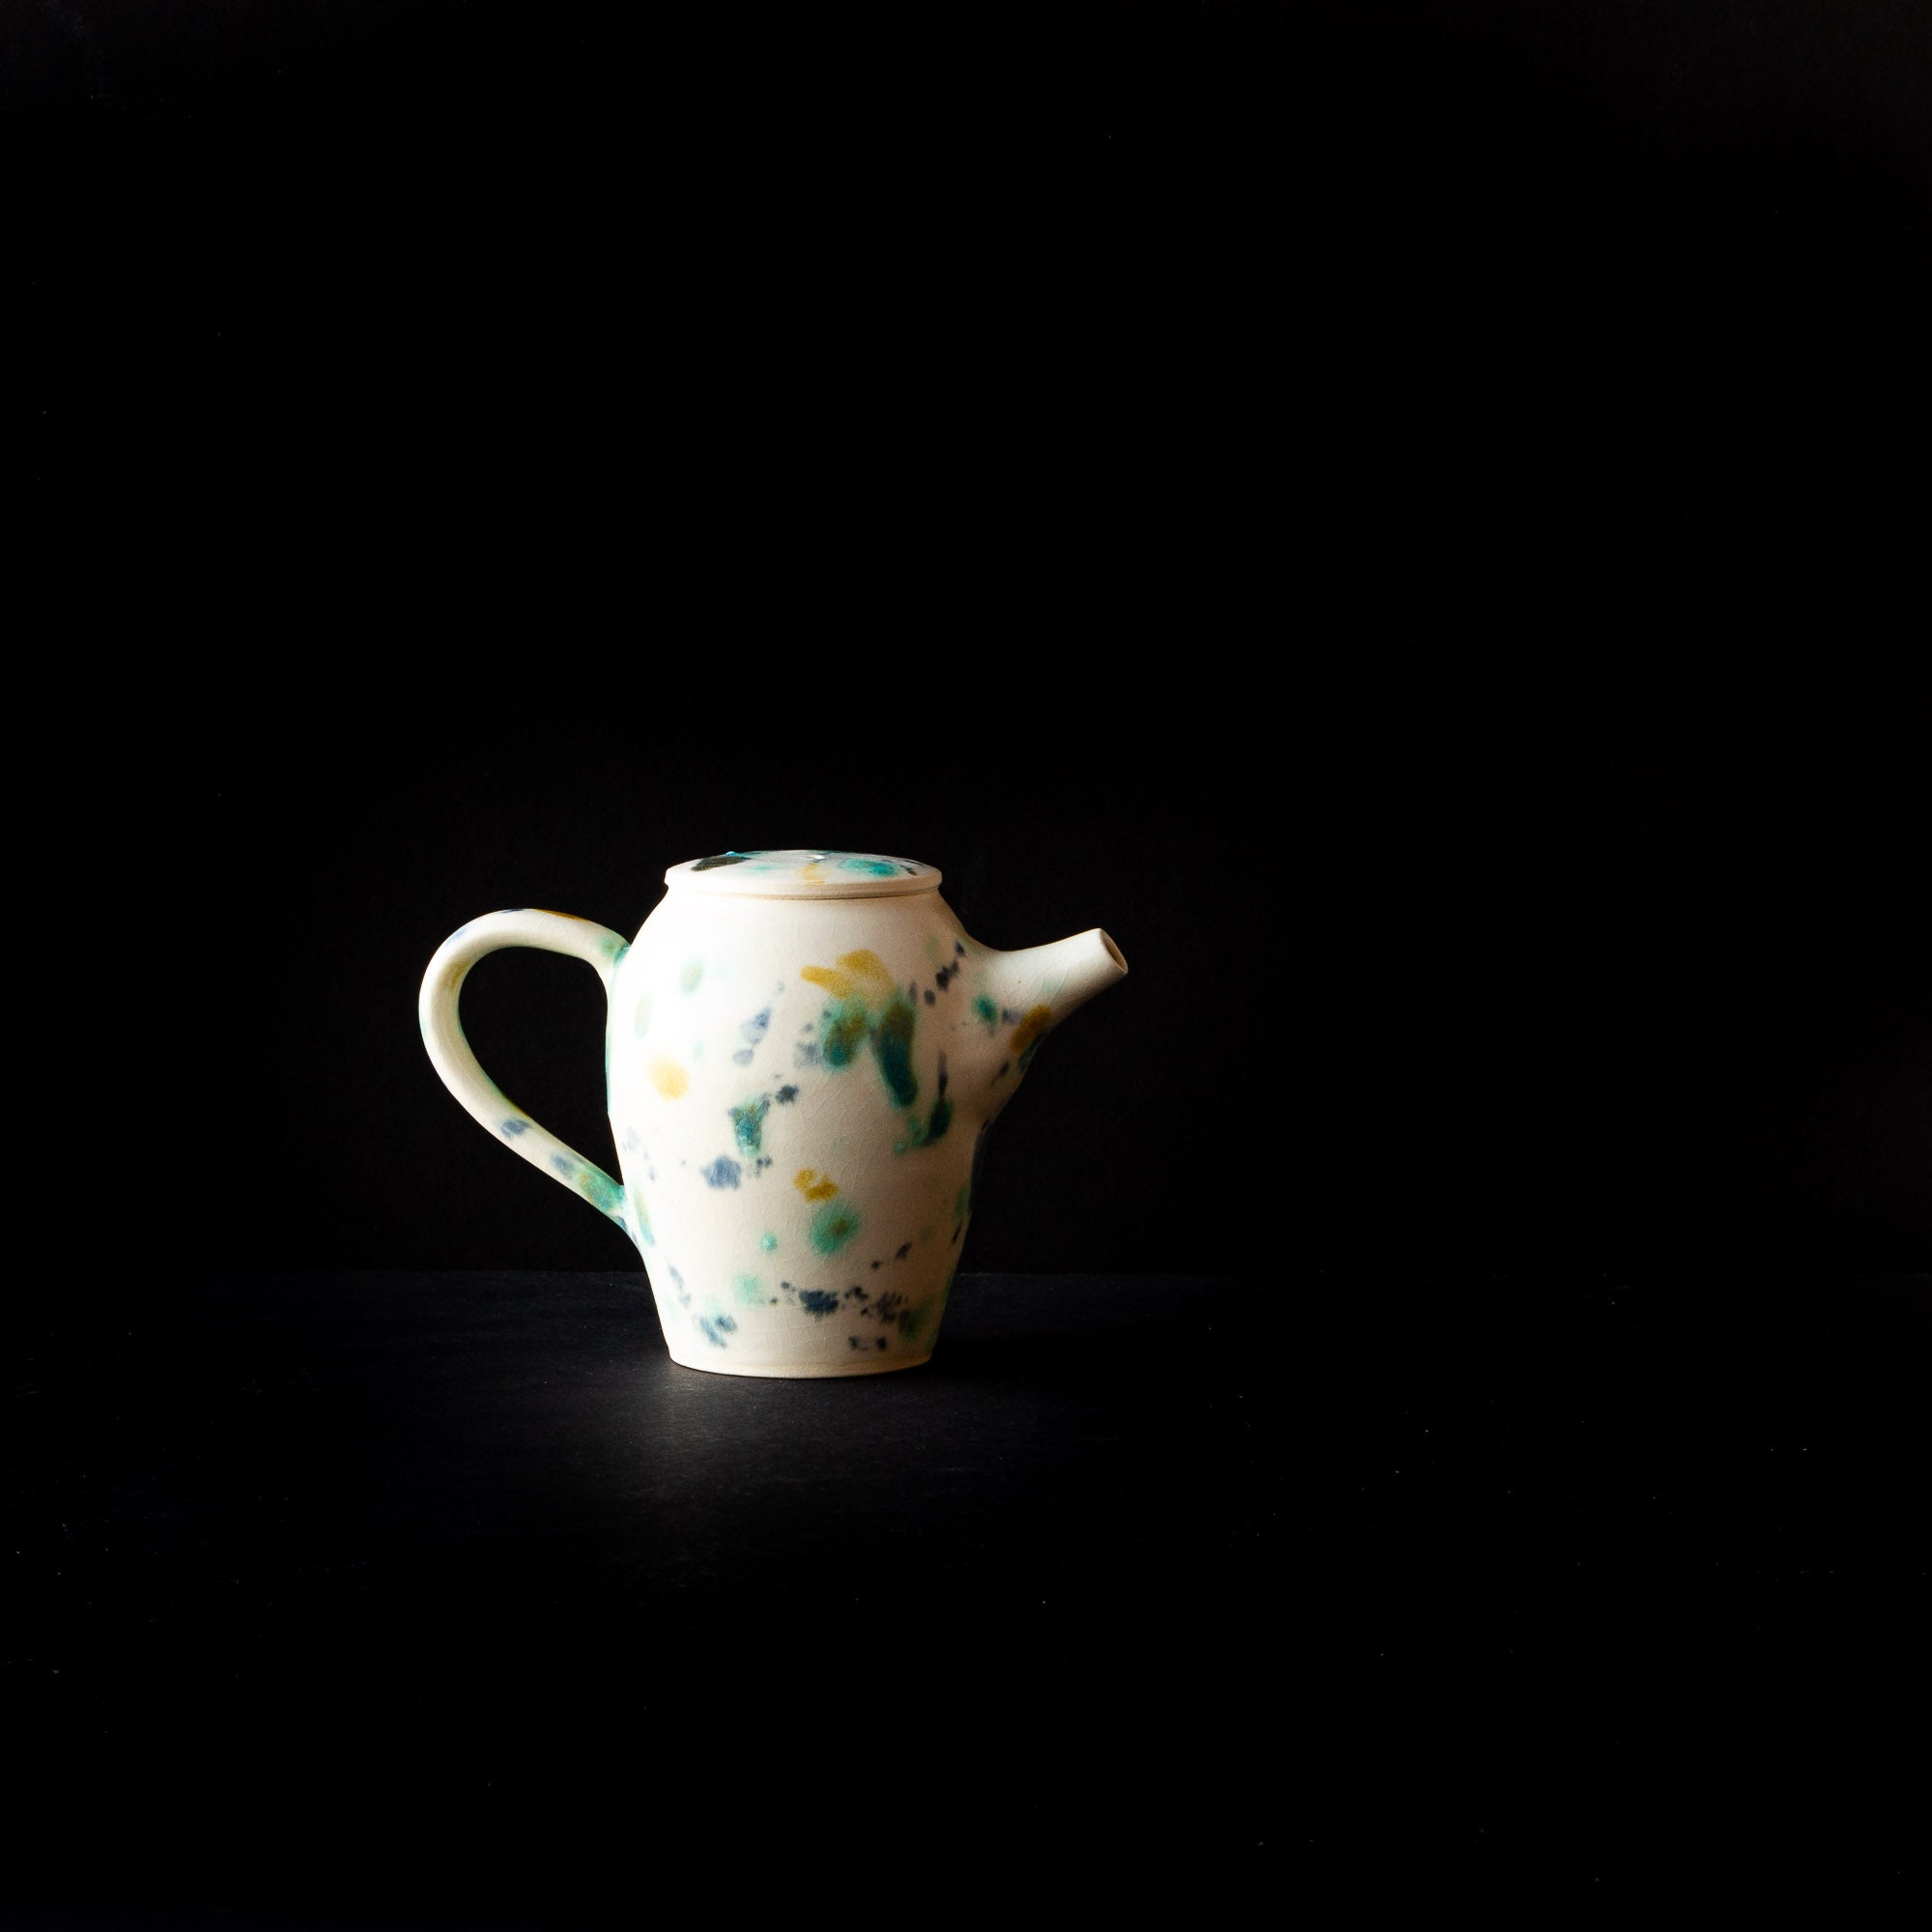 Hanabira - Small Handmade Ceramic Teapot - Sold by Chic & Basta